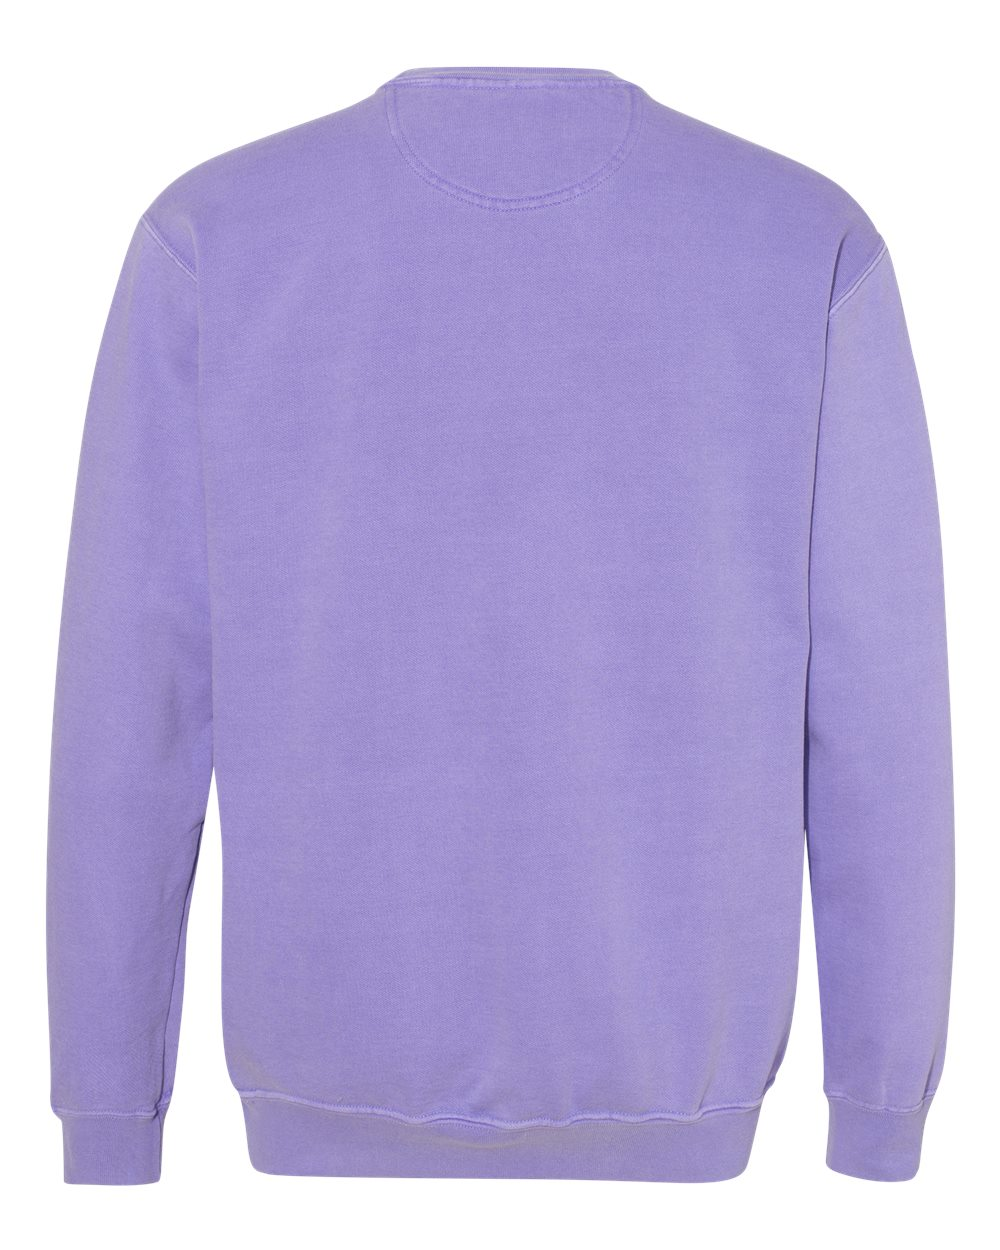 Comfort-Colors-Mens-Garment-Dyed-Ringspun-Crewneck-Sweatshirt-1566-up-to-3XL miniature 64